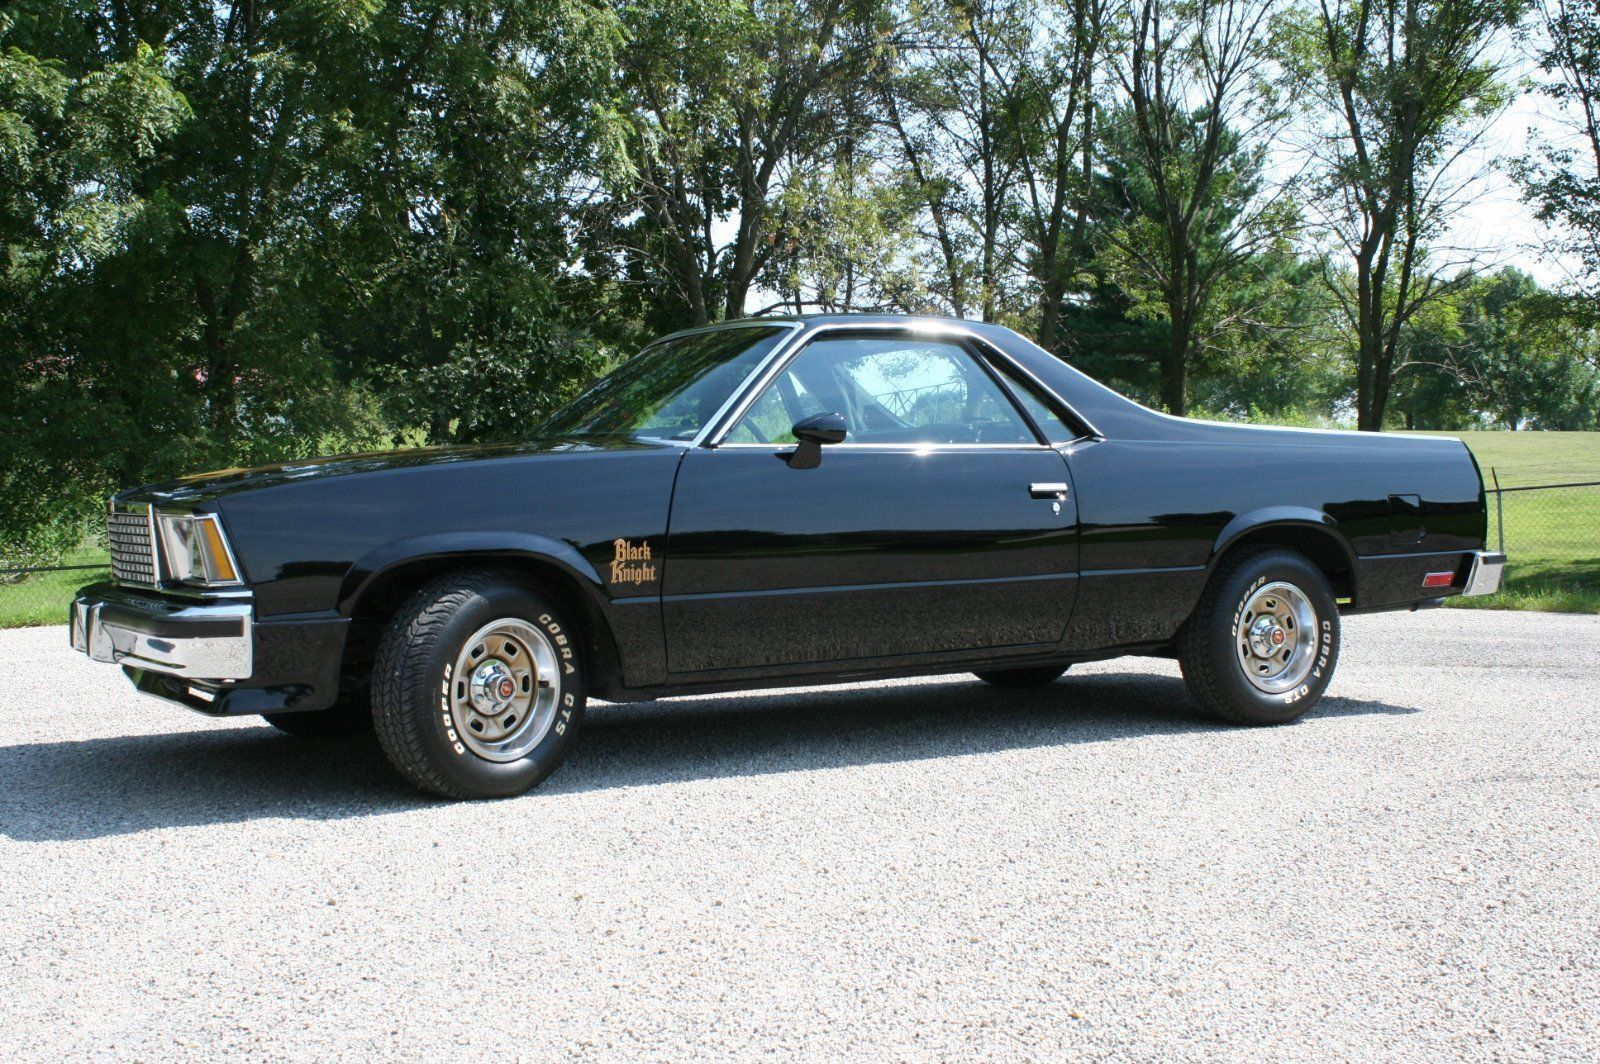 Black Knight Clone 1978 Chevrolet El Camino Pickup Chevrolet El